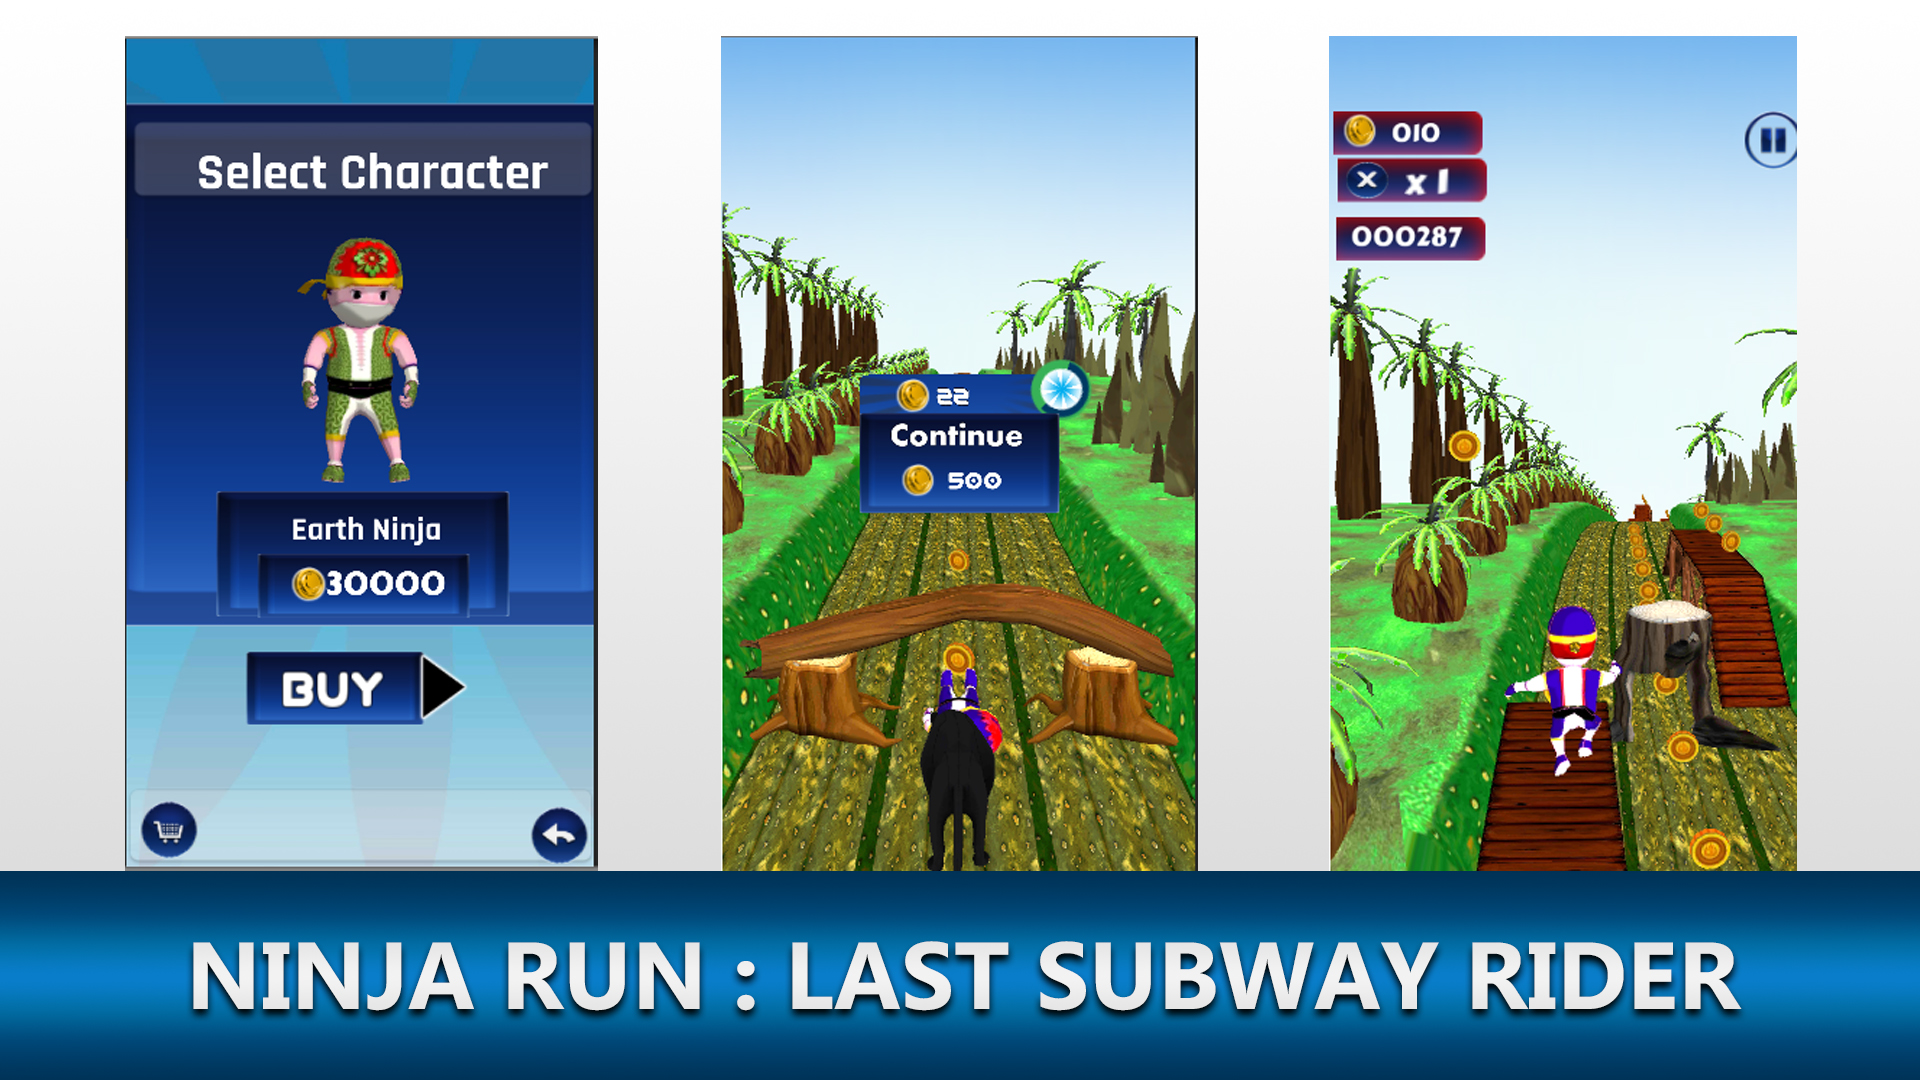 Amazon.com: Ninja run: Last subway rider: Appstore for Android